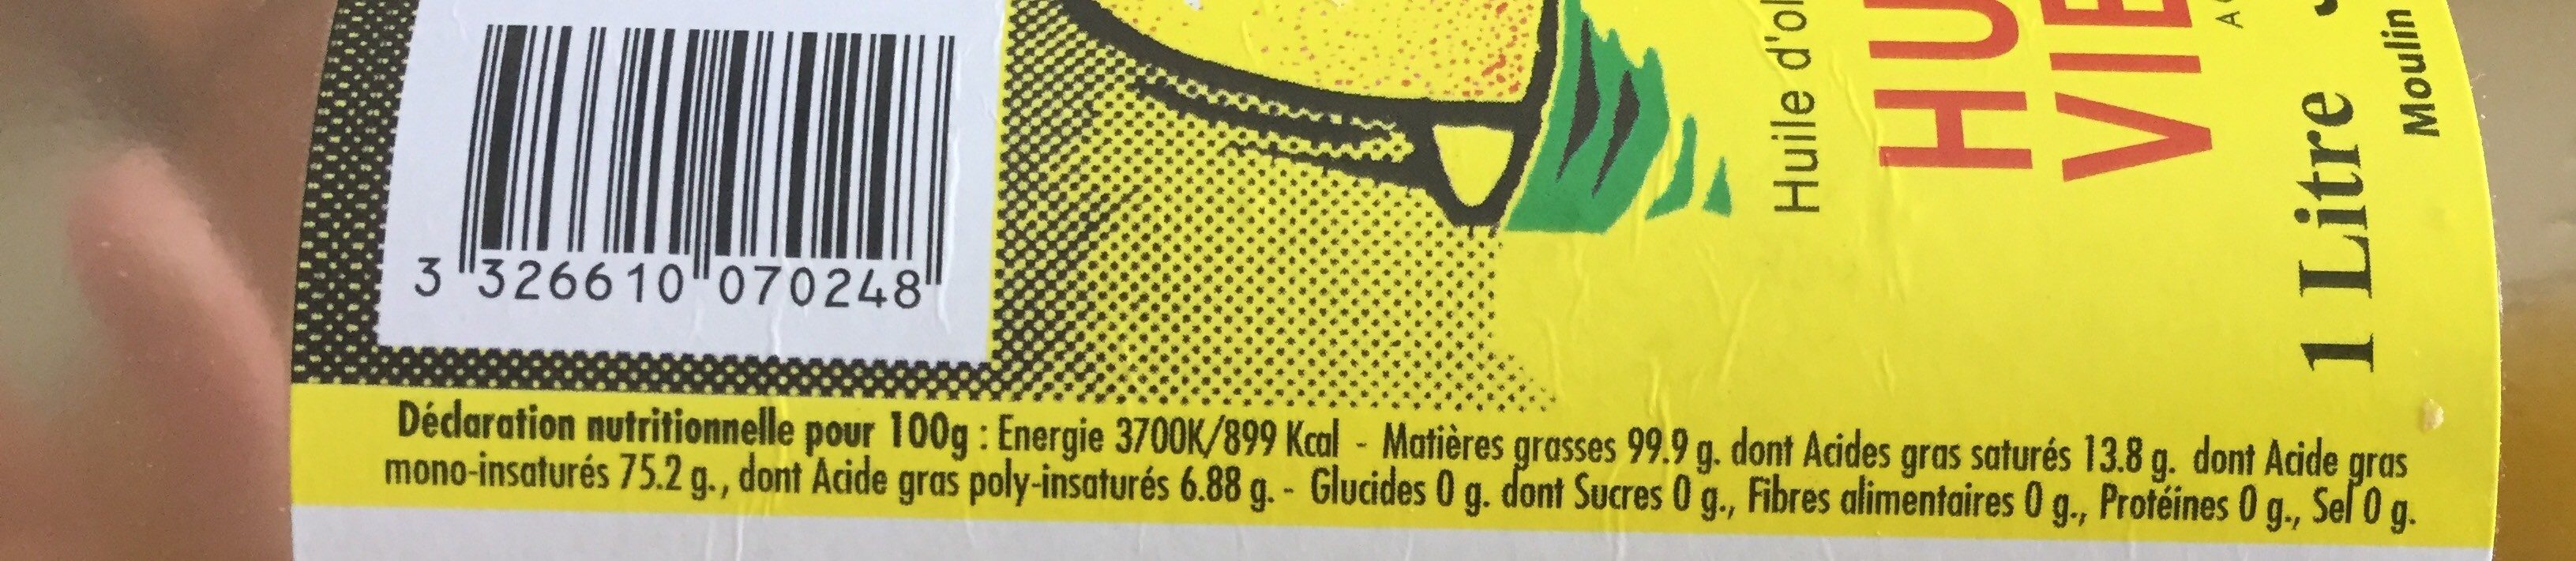 Huile d'olive vierge extra - Informations nutritionnelles - fr